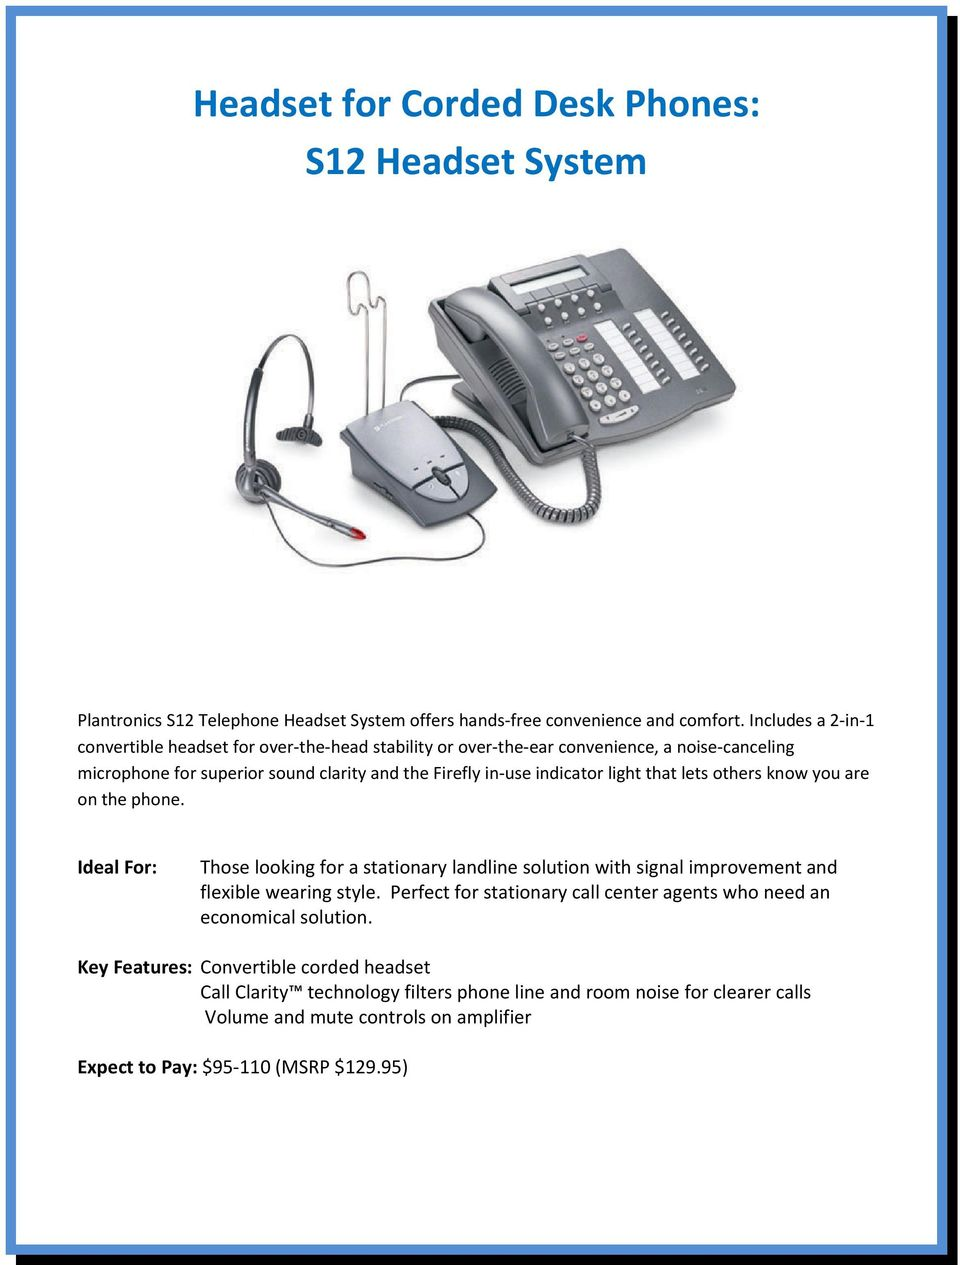 2009 Headset Guide for the Small Office / Home Office / Call